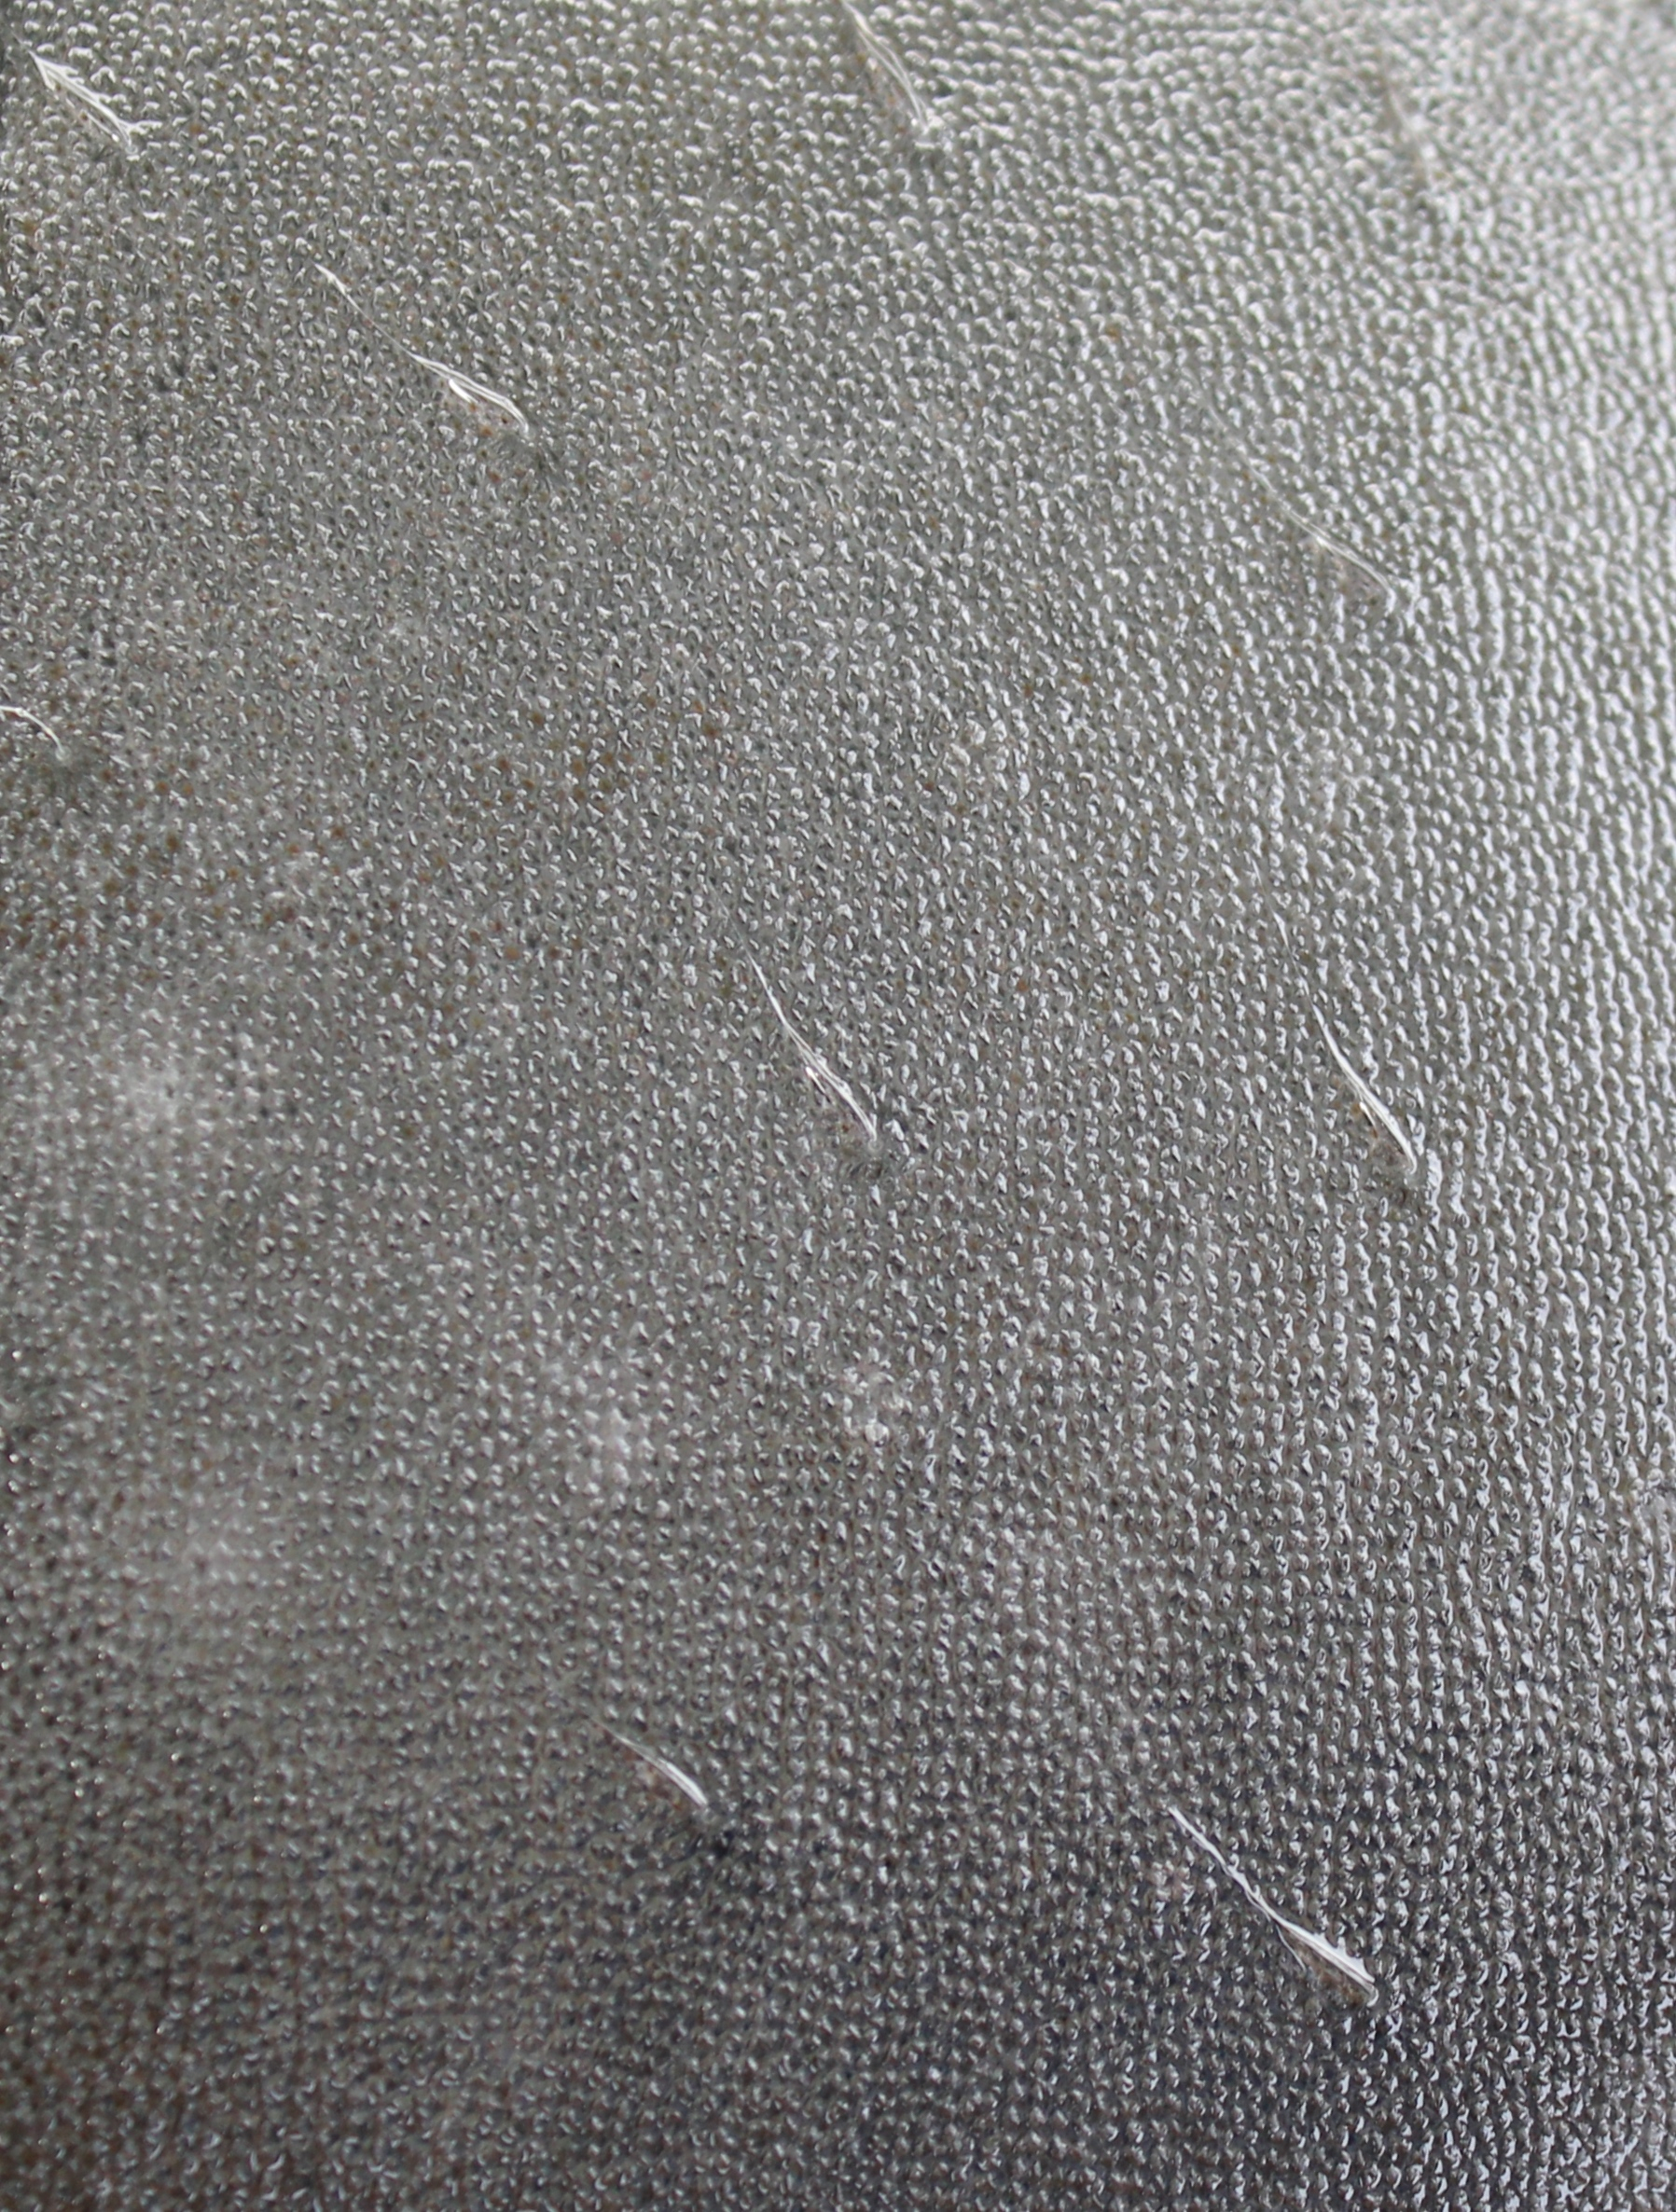 Manatee sensory hairs called vibrissae. Credit Pittsburgh Zoo & PPG Aquarium